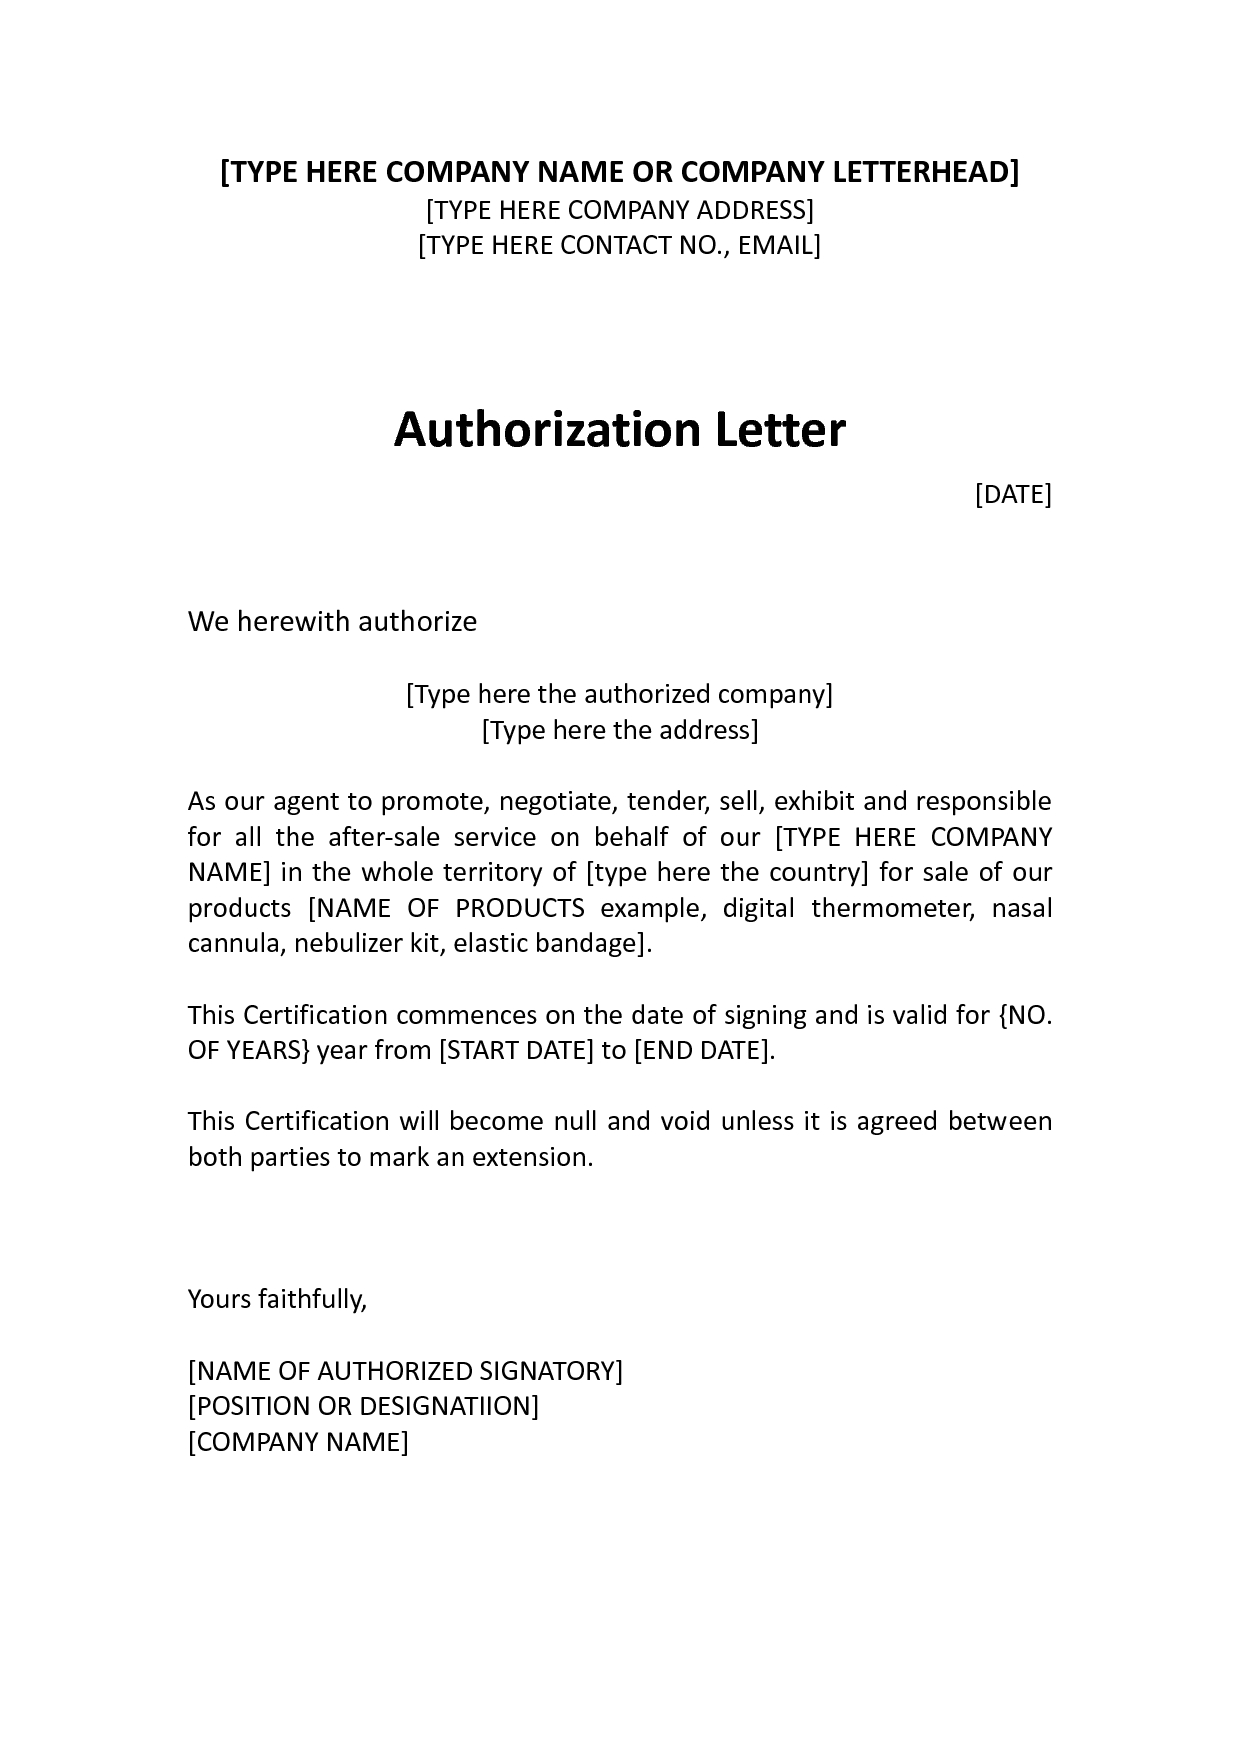 Letter Of Transmittal Template Construction - Authorization Distributor Letter Sample Distributor Dealer